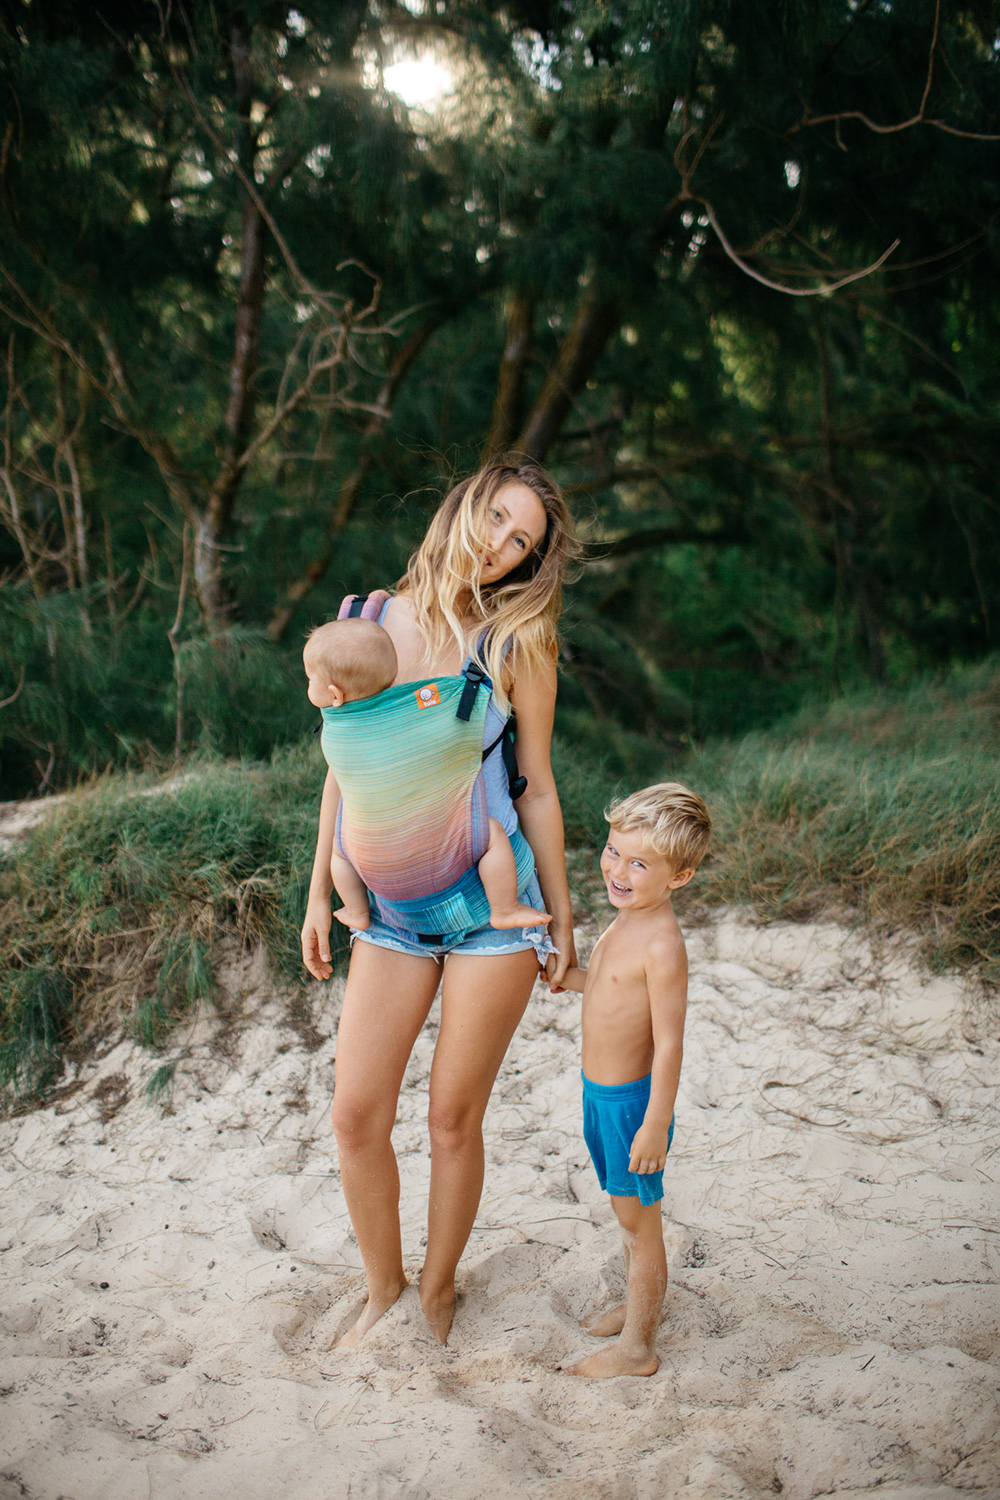 ellen fisher of mango island mamma plays at baby beach in paia.